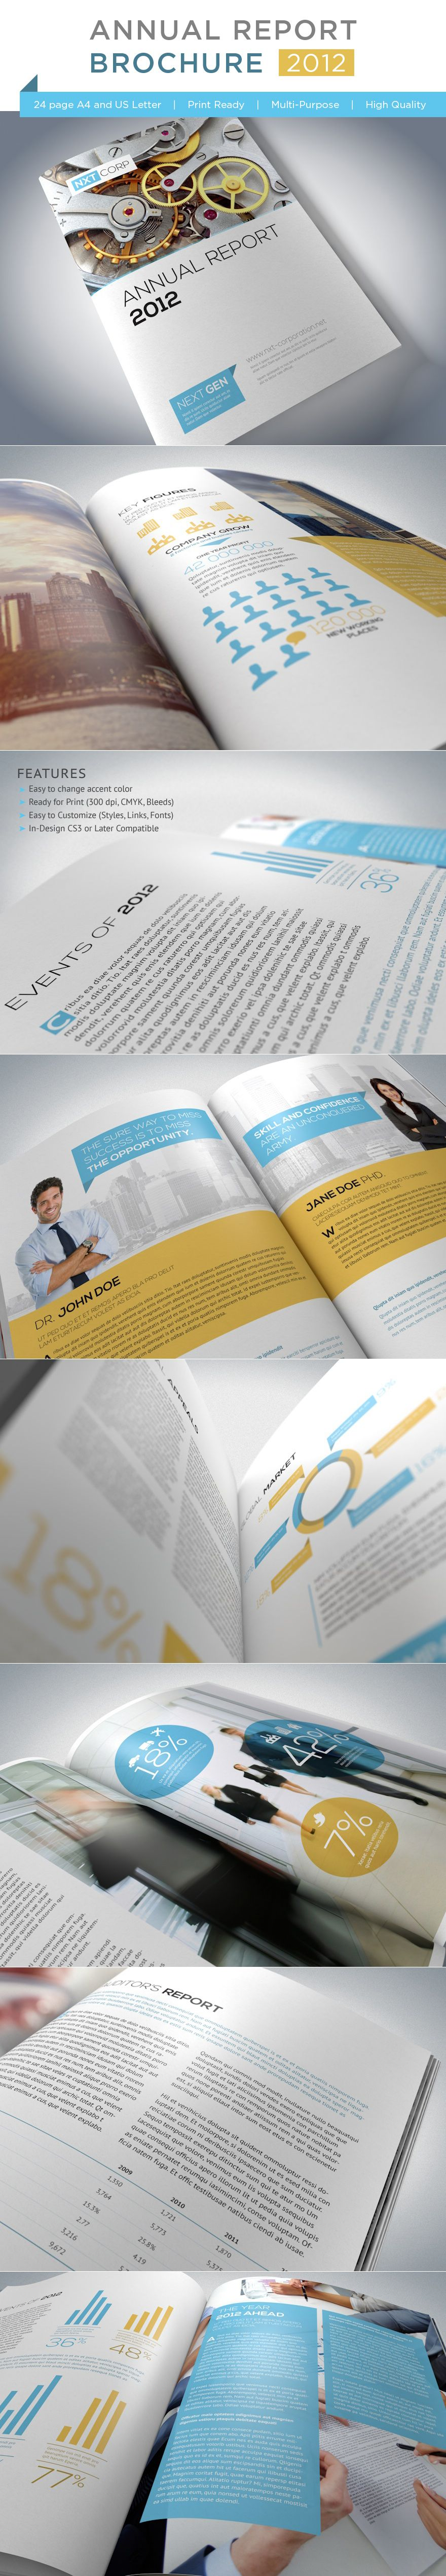 Annual Report Brochure  Brochures  Creattica  Page Layout